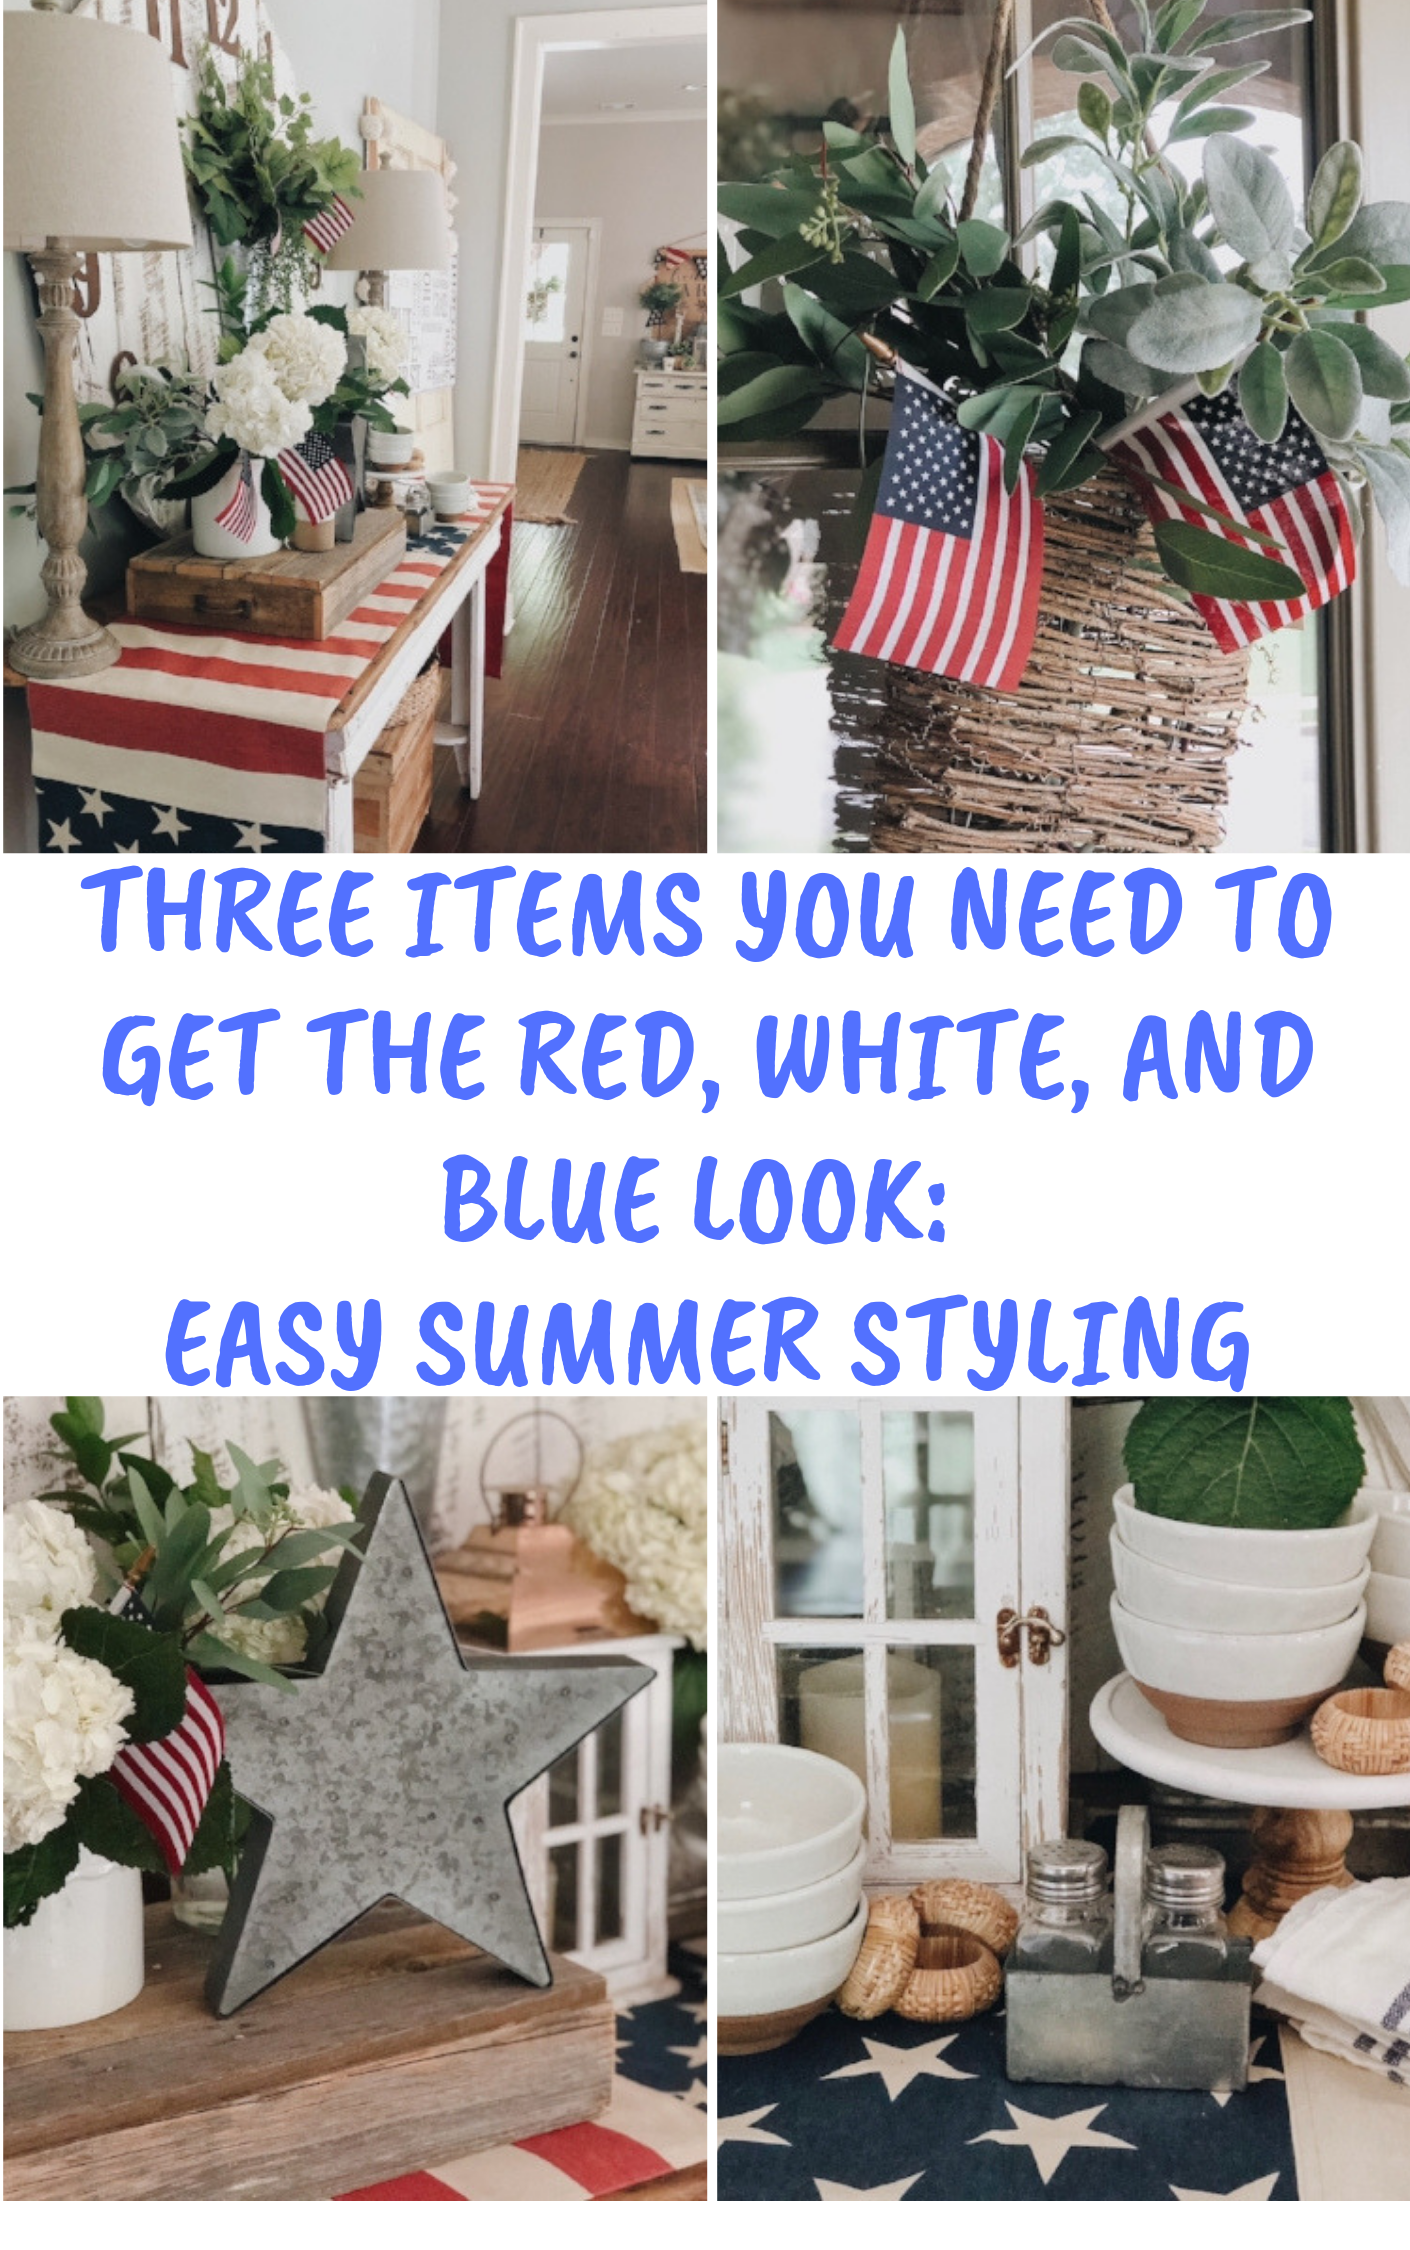 Three Items You Need To Get The Red, White, And Blue Look: Easy Summer Styling.png